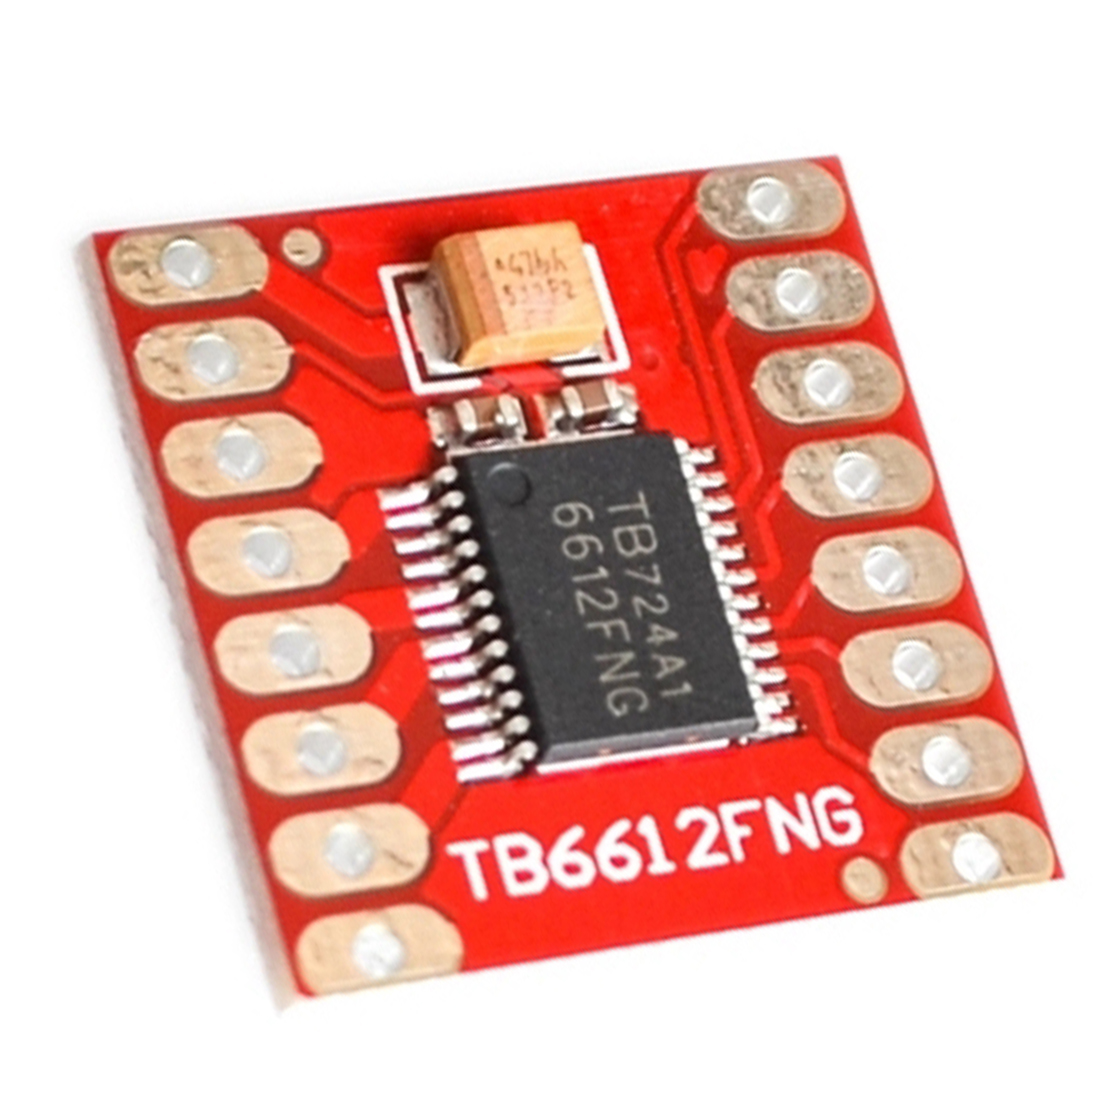 1/5Pcs TB6612FNG Dual Motor Driver Module For Arduino Two-Wheeled Microcontroller